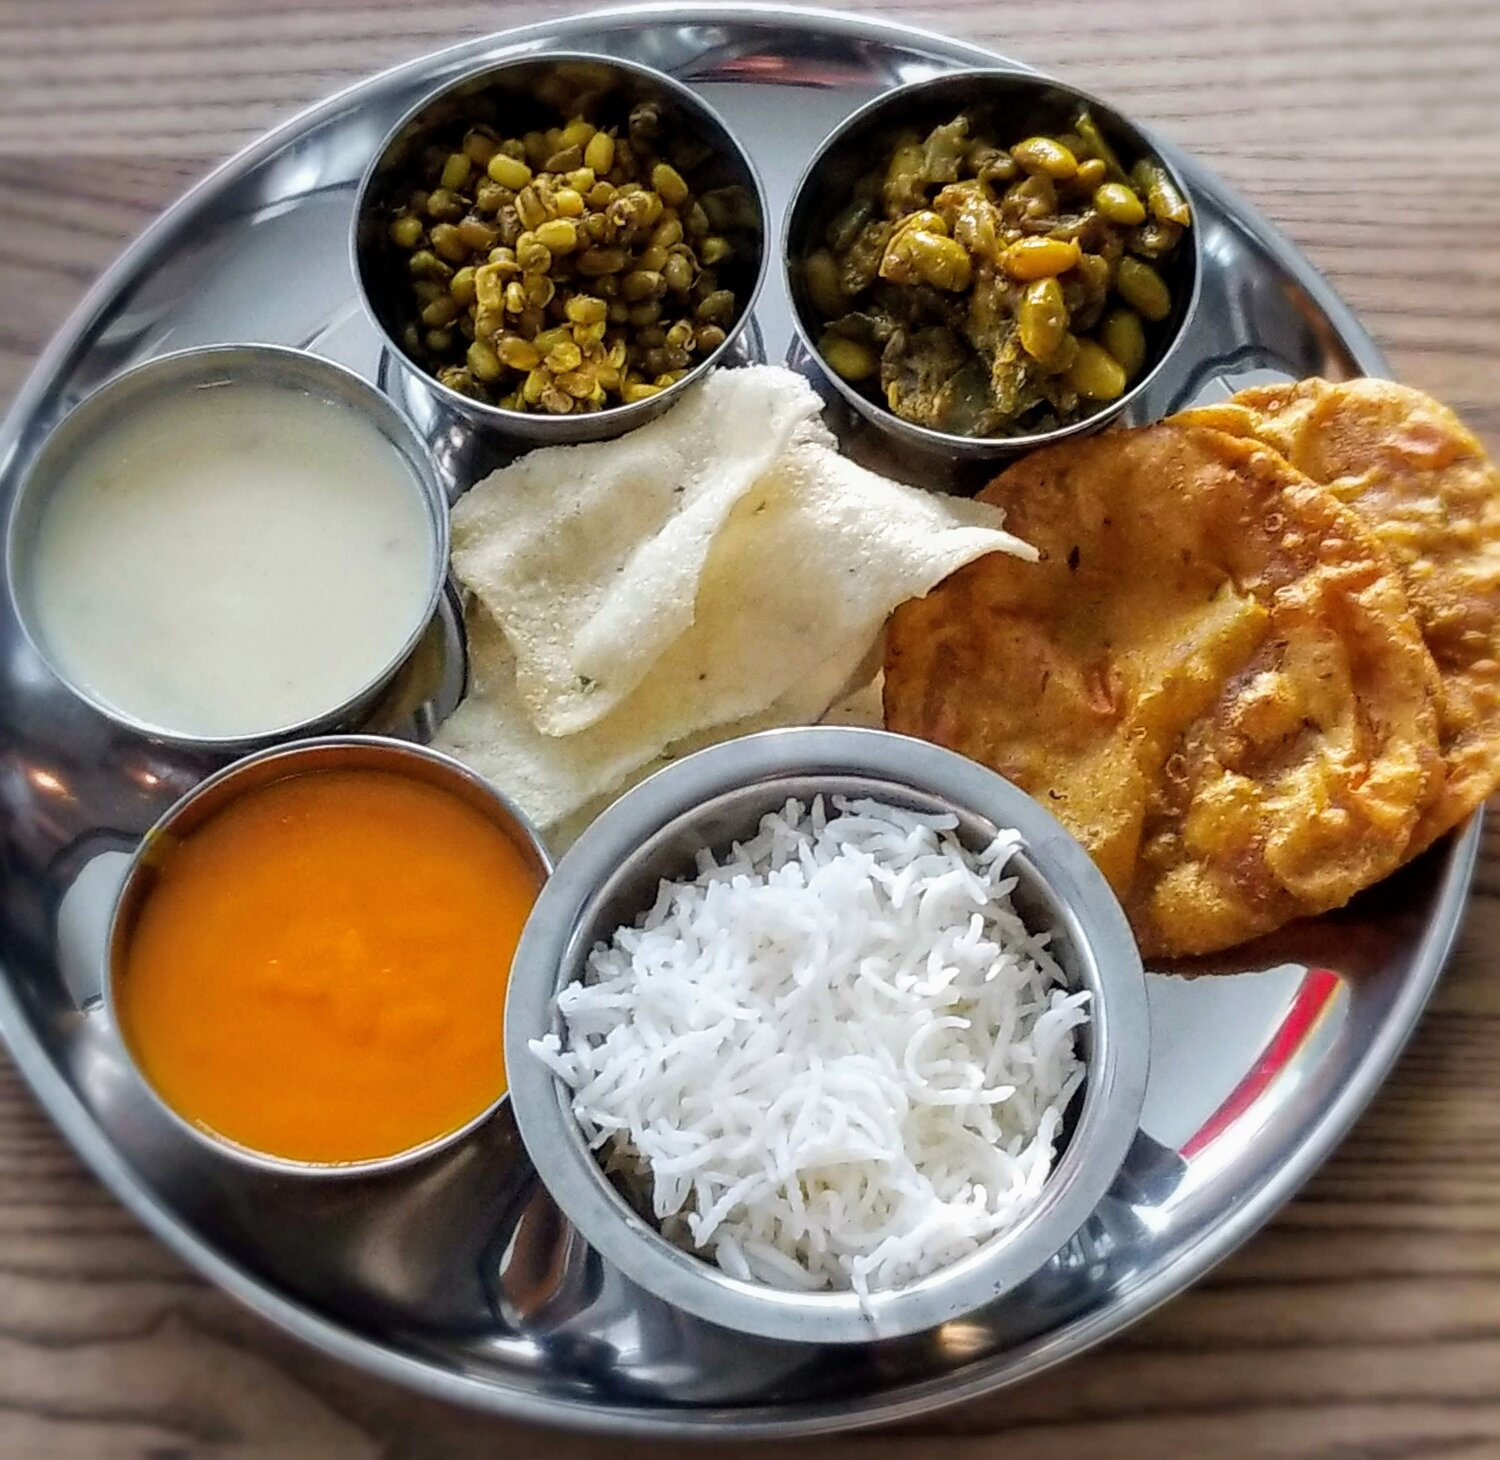 A thali is an assortment of small dishes served as a meal that differs from region to region. My family is from Gujarat, a state in west India known for its vegetarian dishes, so many of the recipes you find on here will tend to be the Gujarati version of Indian dishes.    The typical components of a Gujarati thali are rice, a bread item like puris, a few vegetable dishes, lentil gravies, and a sweet. Here we have the curried mung beans along with Basmati rice and puris, whose recipes you can find in the recipe box. We're going to work our way around the thali, learning about kadhi, the white gravy made from chickpeas;  papdi, a crunchy snack made from rice flour; papdi saak, another Indian vegetable dish.; and sweet and orange mango rus.